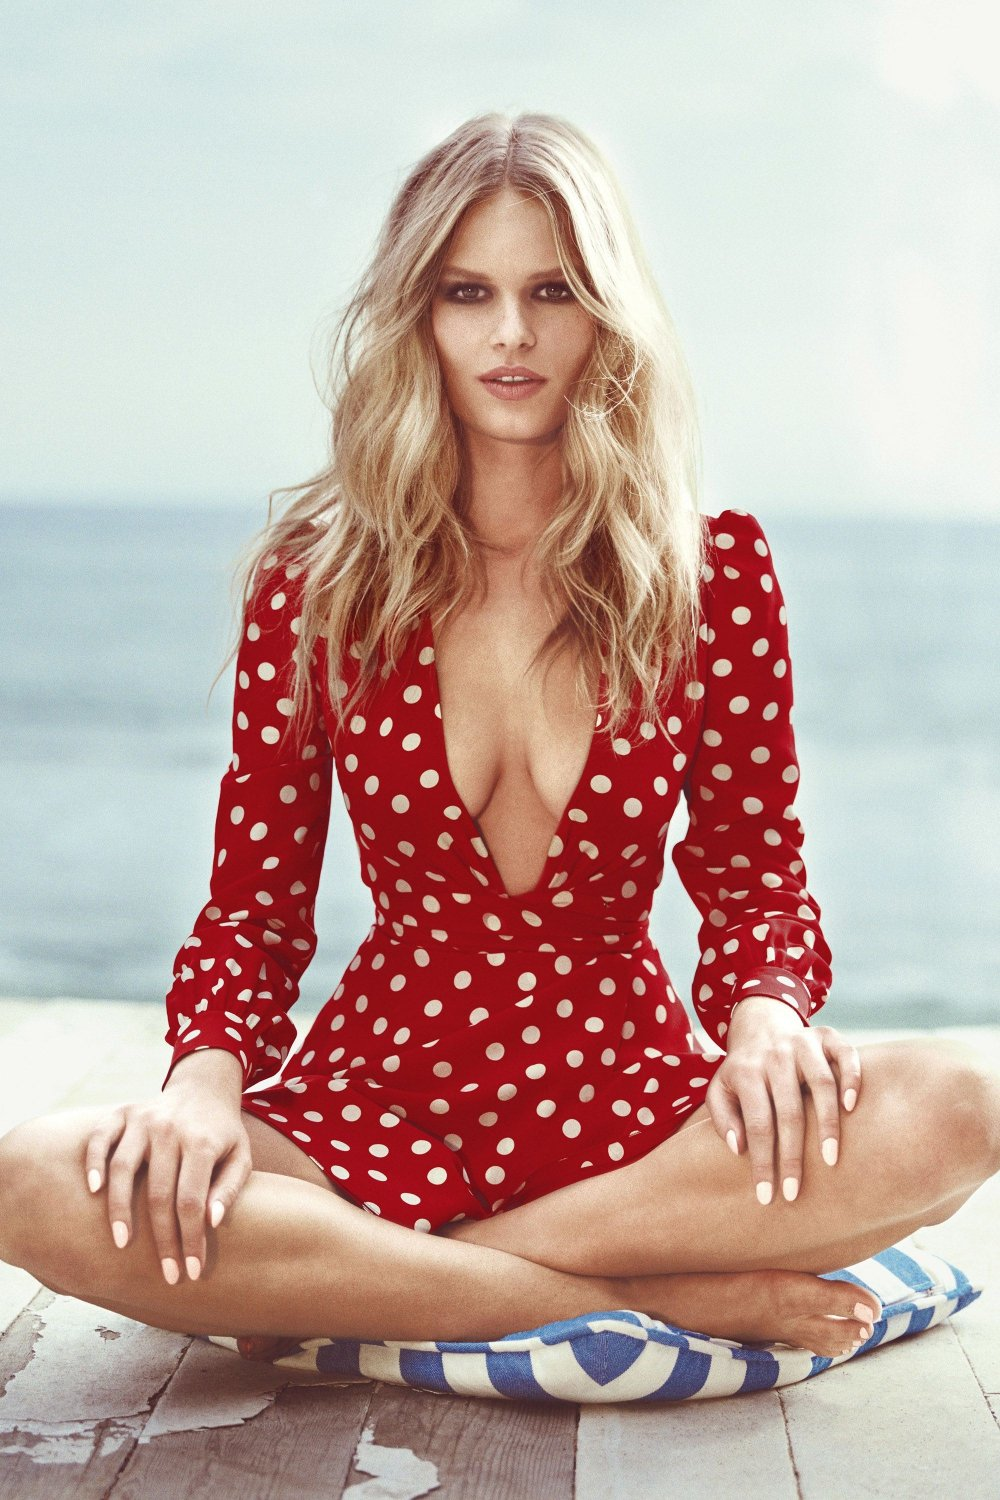 anna-ewers-for-us-harpers-bazaar-may-2015-9